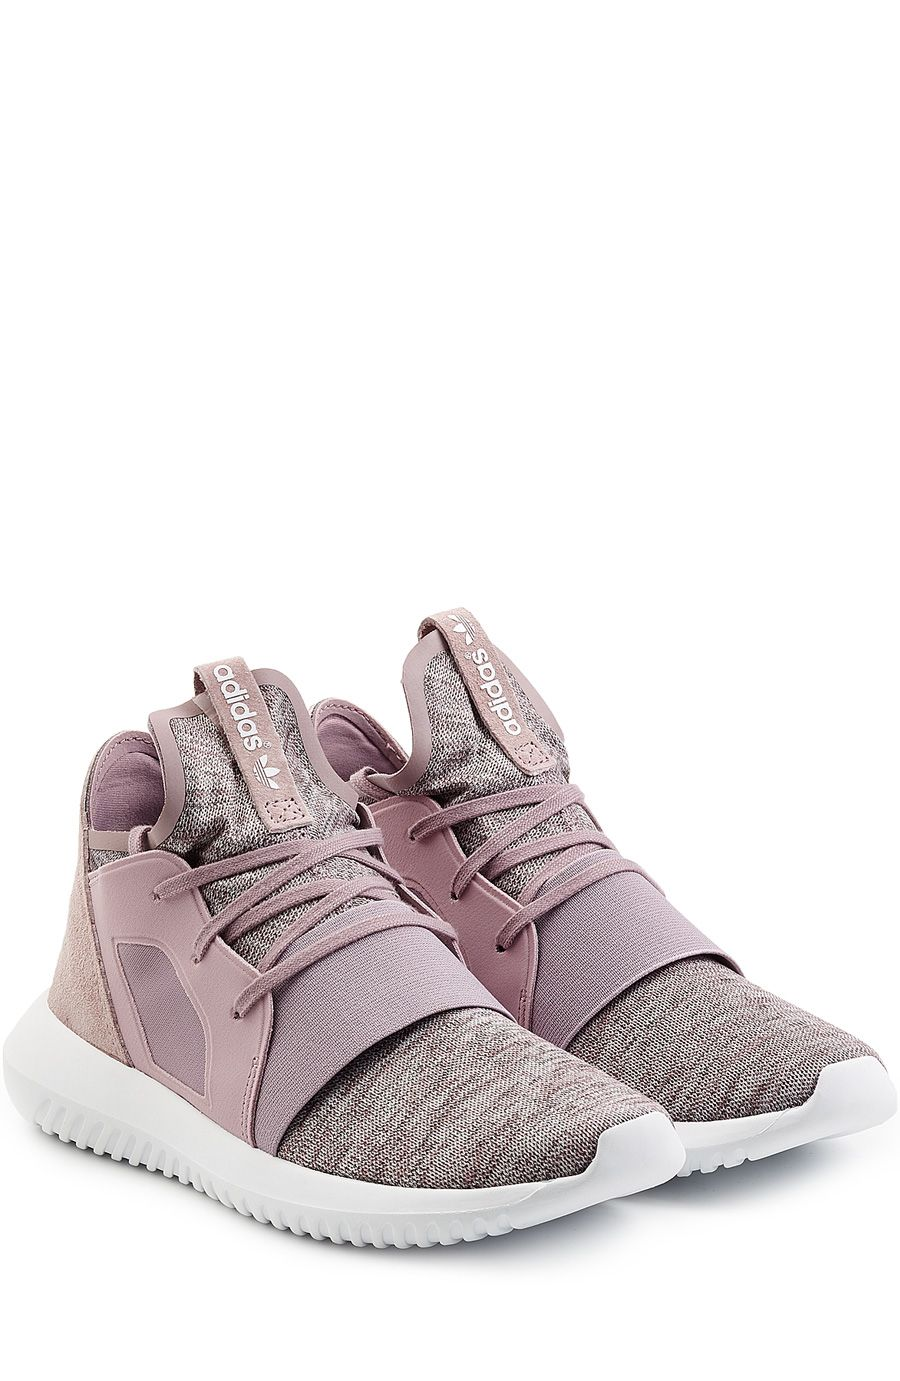 new products 32333 c61cc Tubular X Sneakers detail 0